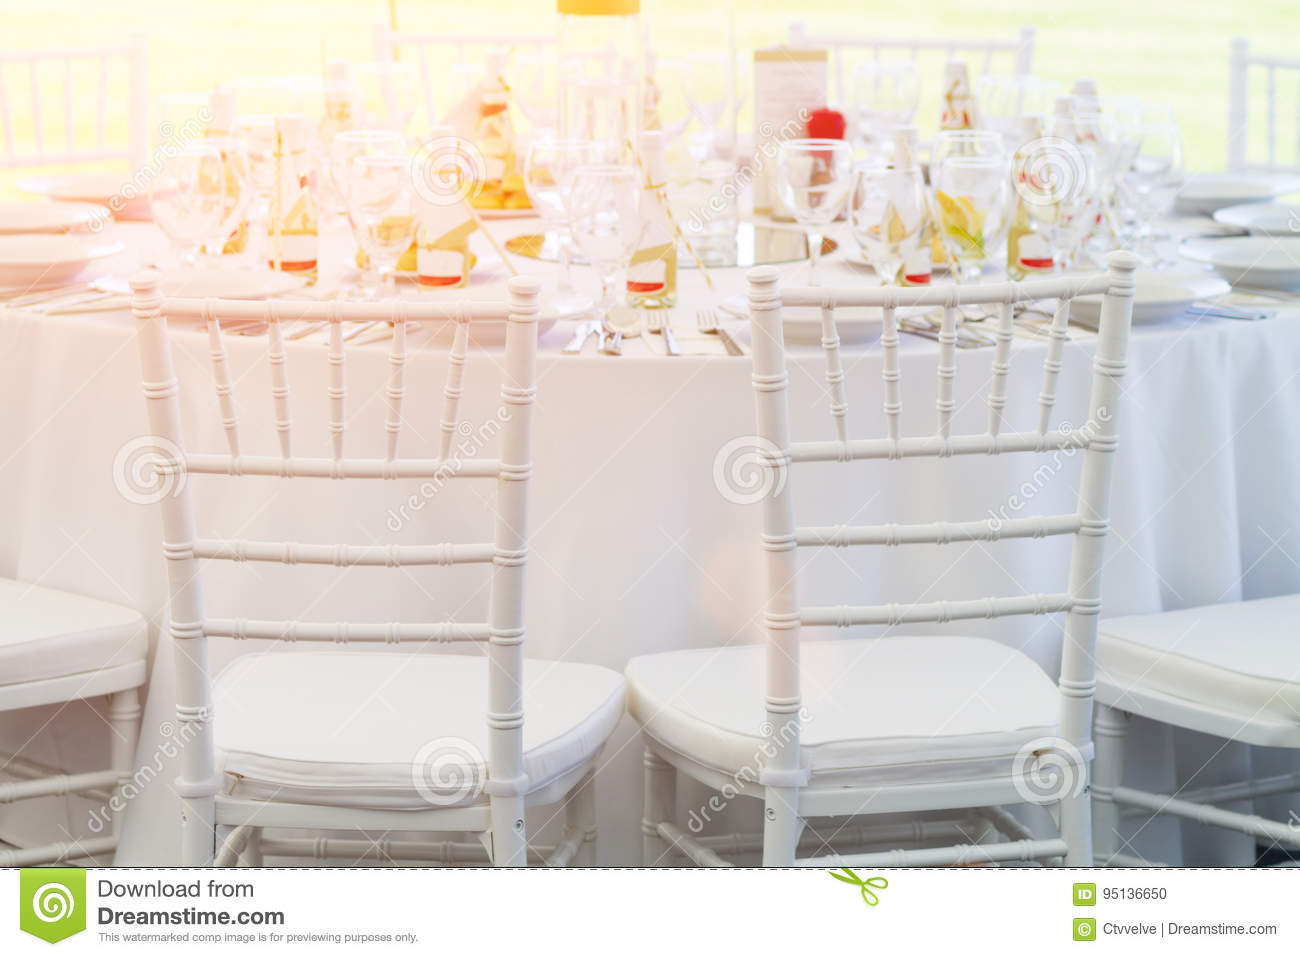 White Chairs And Fancy Table Set For A Wedding Dinner Stock Photo Image Of Fancy Chair 95136650